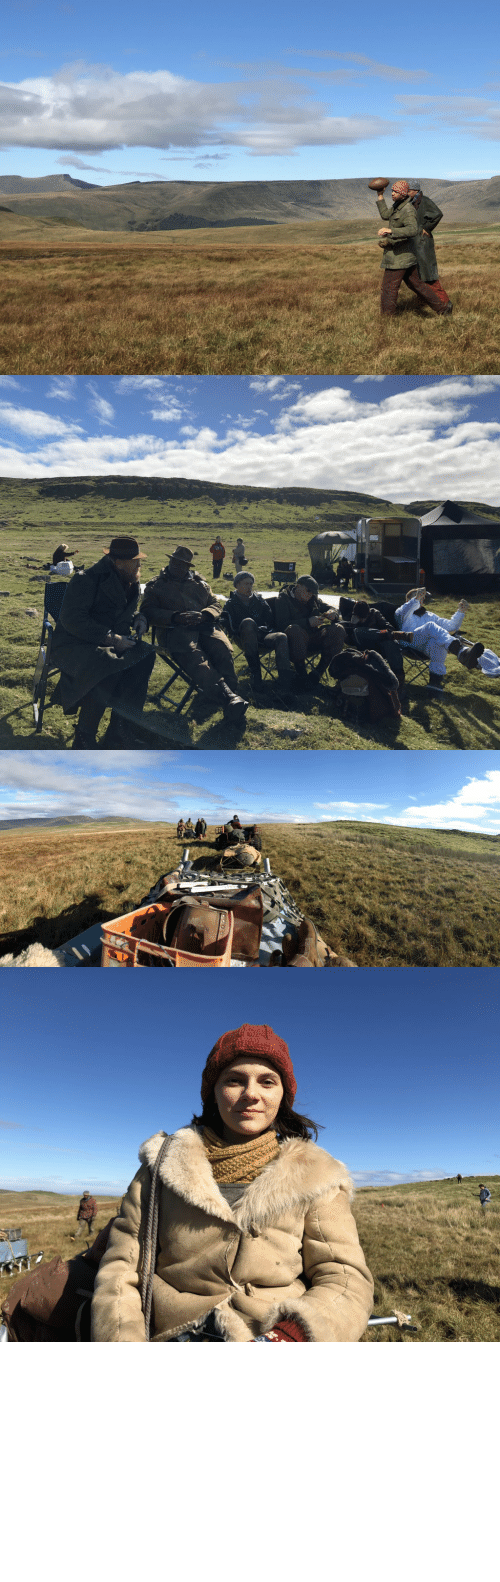 scenes: #HisDarkMaterials Behind The Scenes Ep. 5 The Gyptians between camera setups, heading North https://t.co/qmY99TlWeN